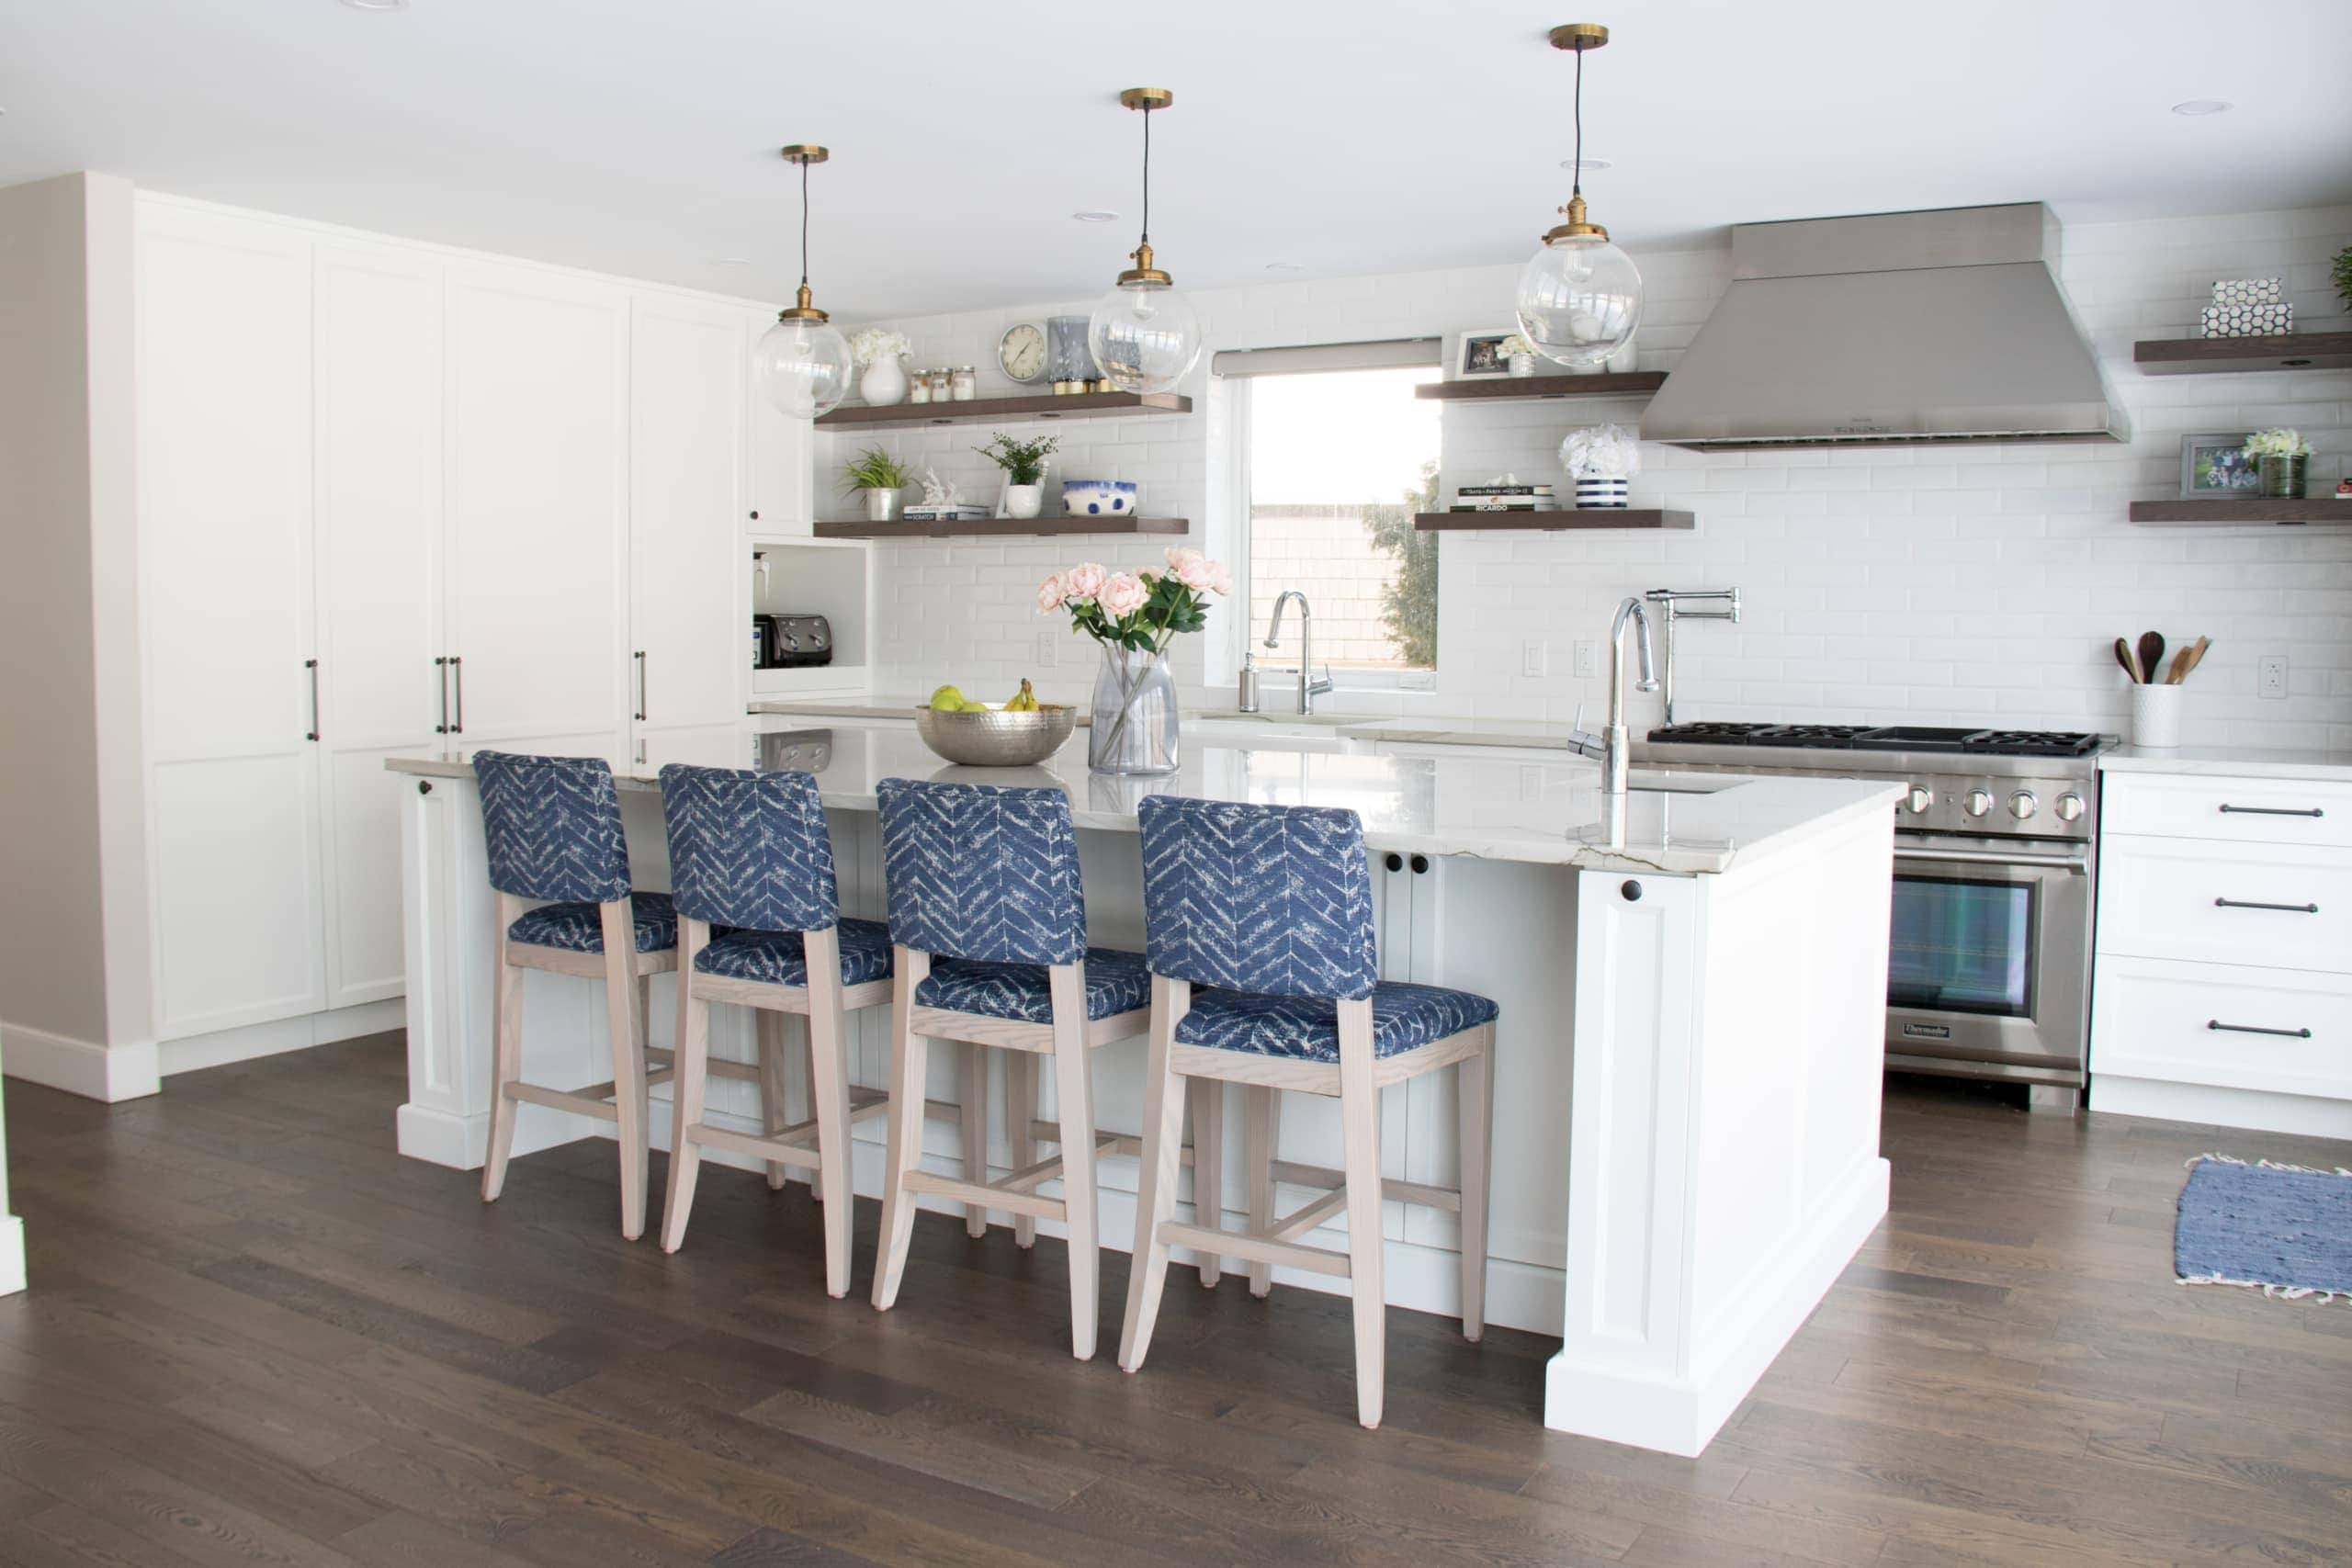 Blue bar stools and an island within a kitchen